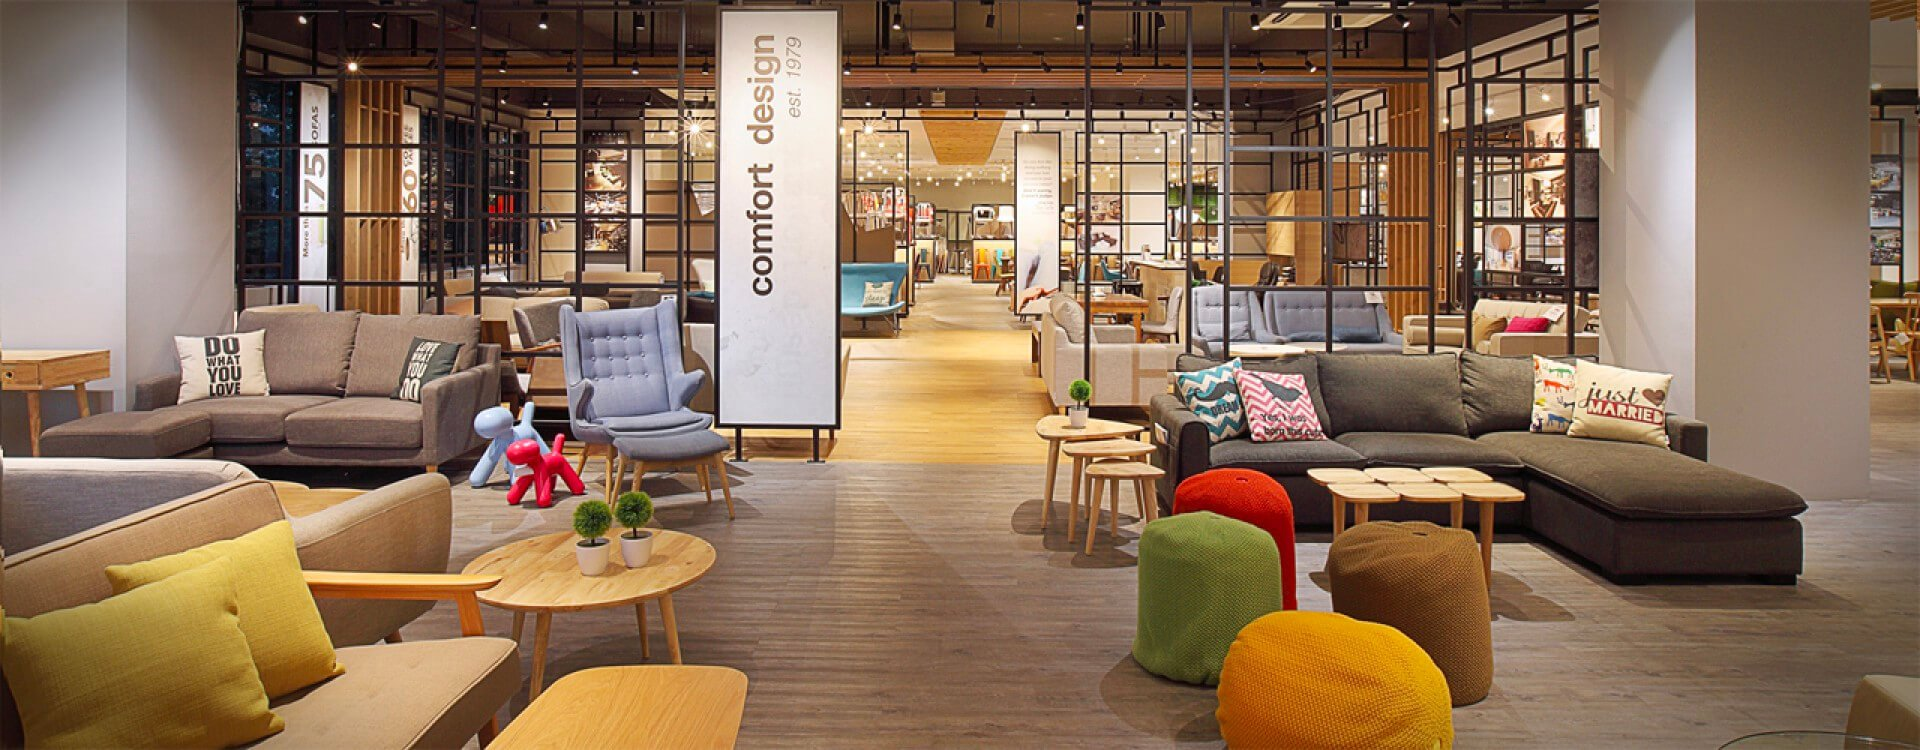 5 reasons why you should visit comfort furniture's showroom